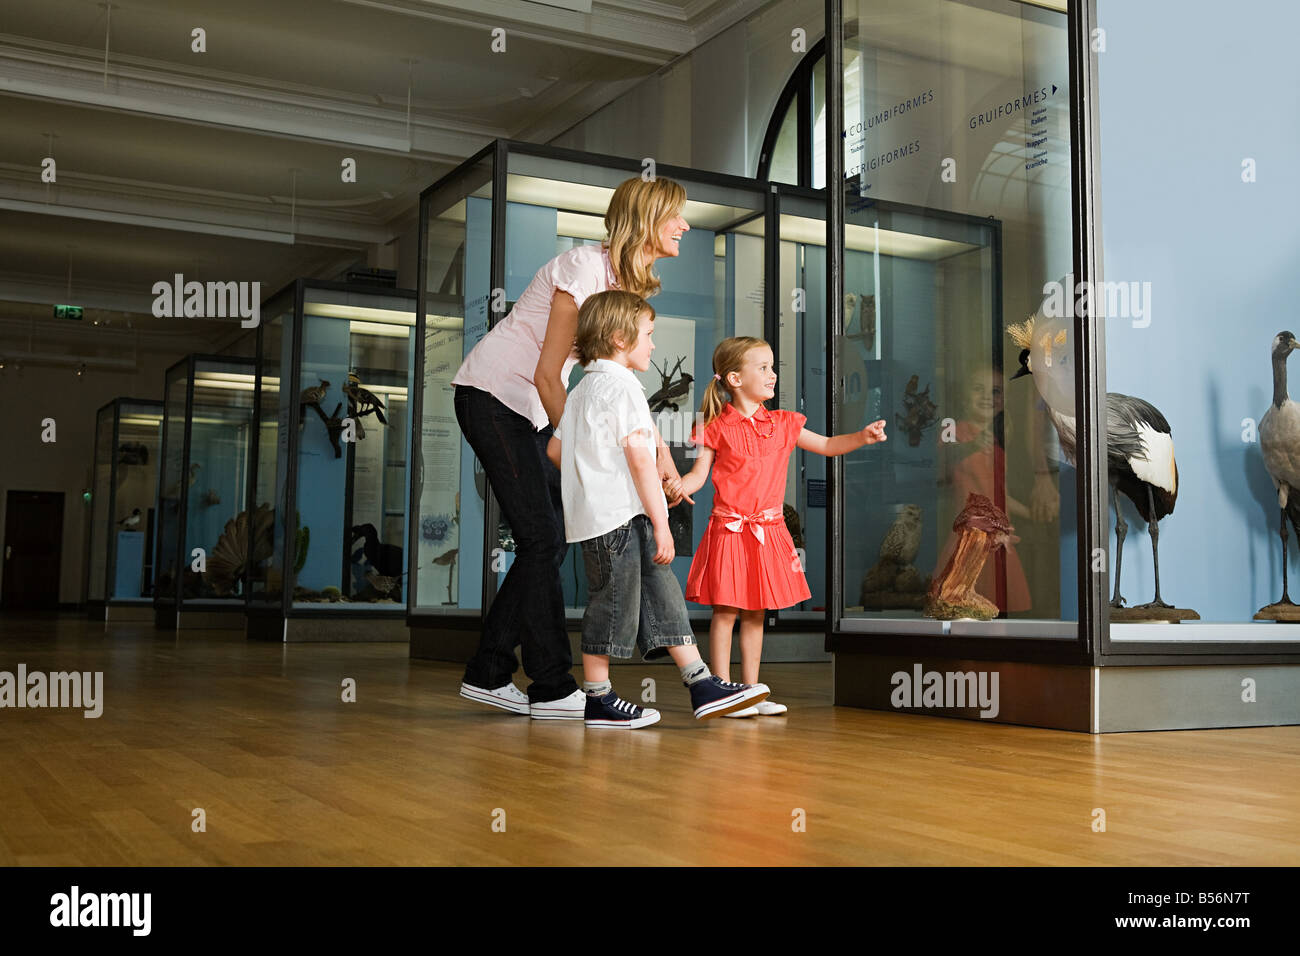 Mother and children looking at a museum exhibit - Stock Image